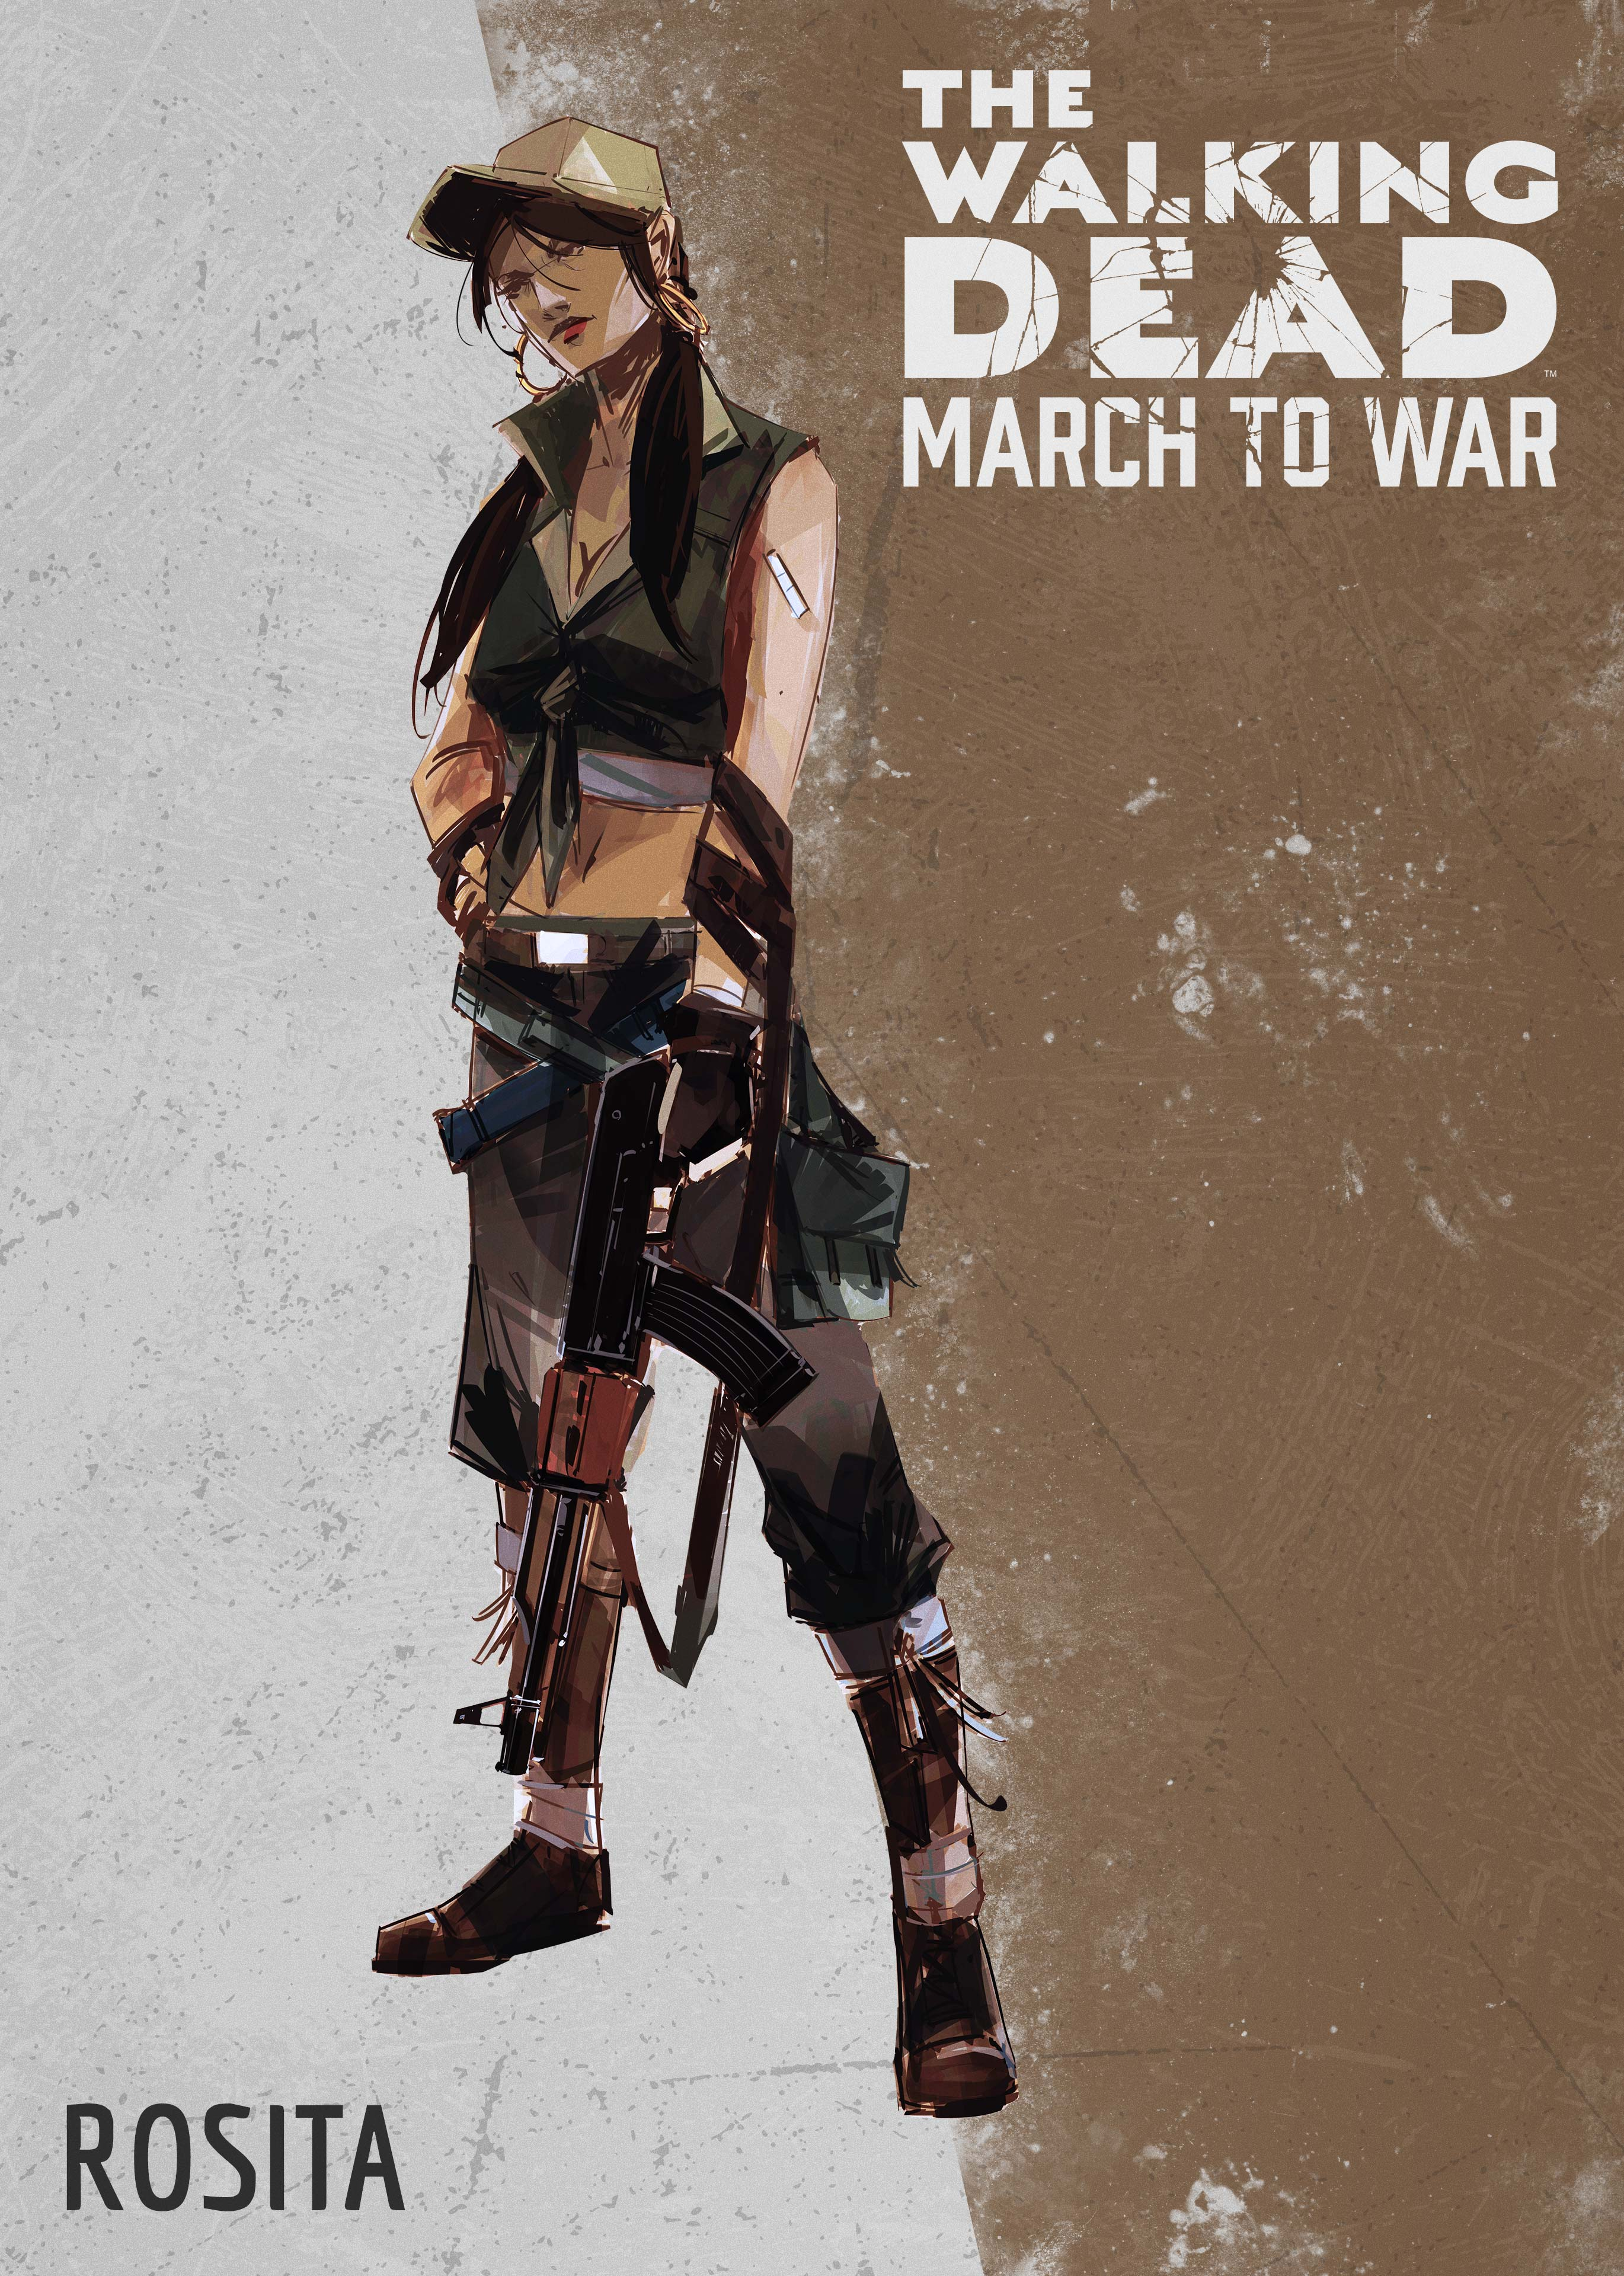 Rosita 2 - The Walking Dead: March To War Game Coming Later This Year